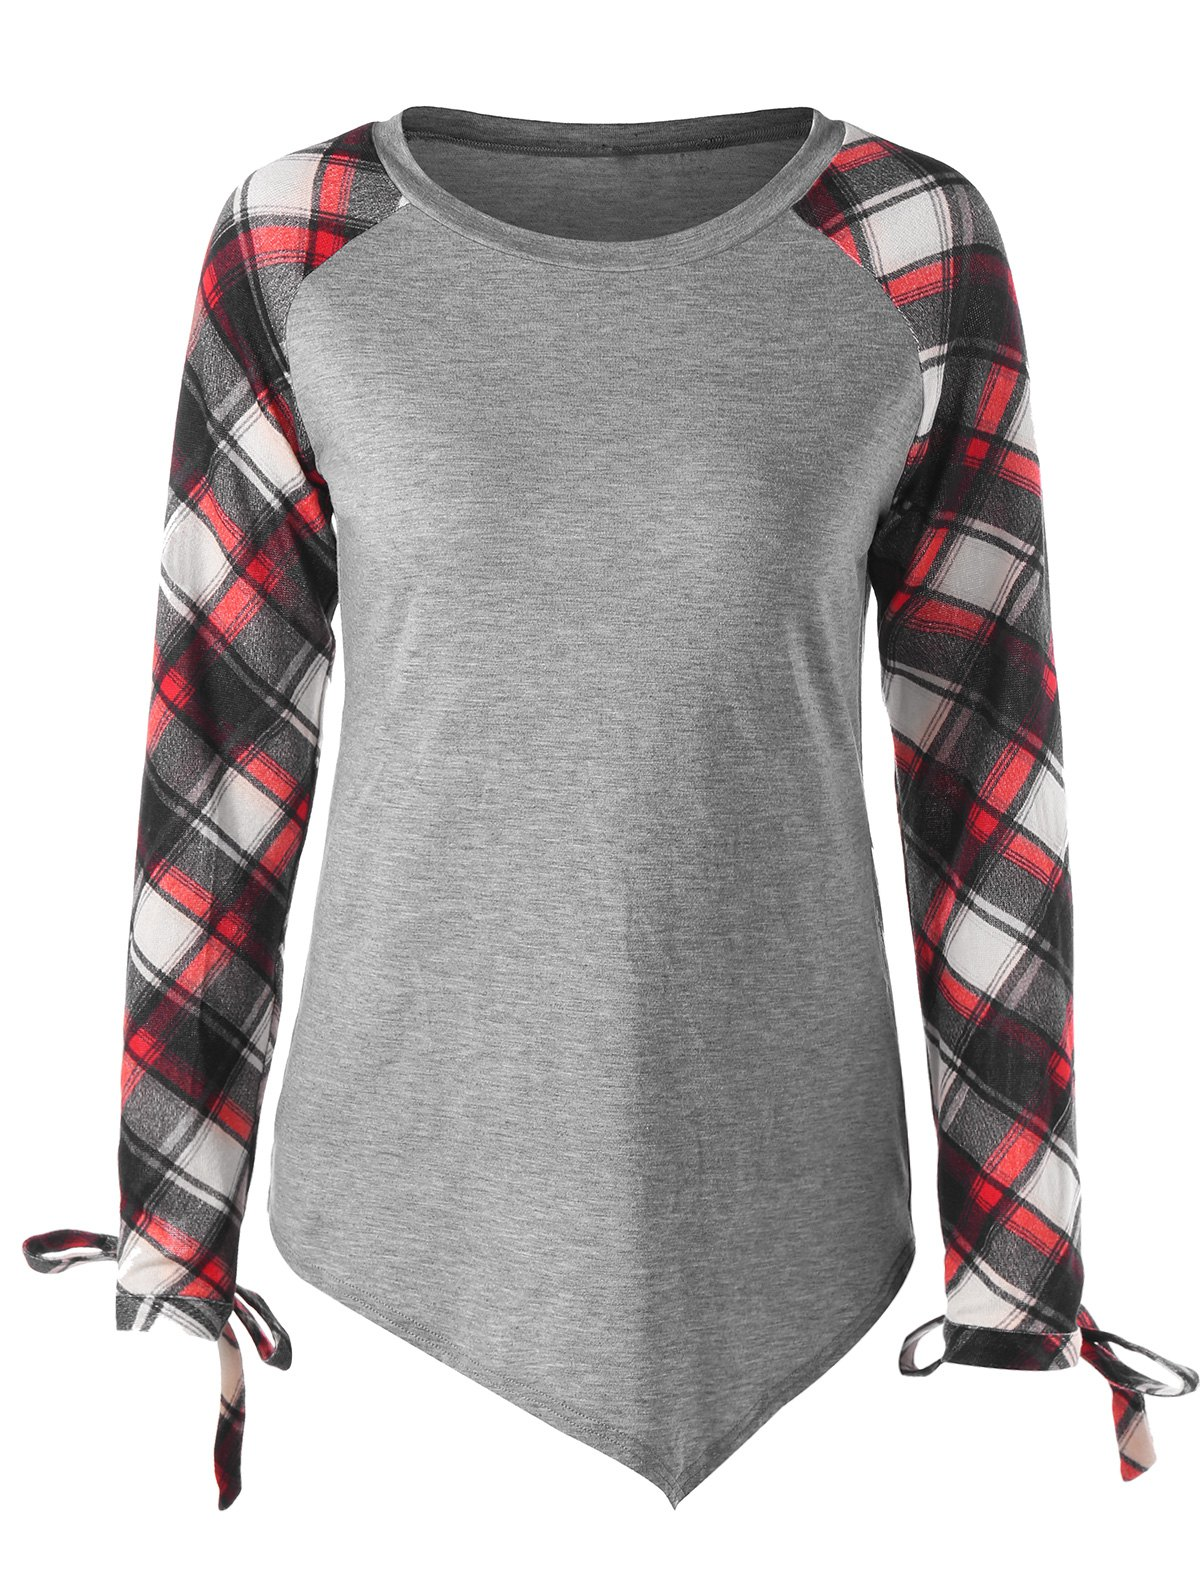 Tie Cuff Raglan Sleeve Plaid TopWOMEN<br><br>Size: 2XL; Color: RED; Material: Rayon,Spandex; Shirt Length: Regular; Sleeve Length: Full; Collar: Round Neck; Style: Casual; Pattern Type: Plaid; Season: Fall,Spring; Weight: 0.2500kg; Package Contents: 1 x Top;